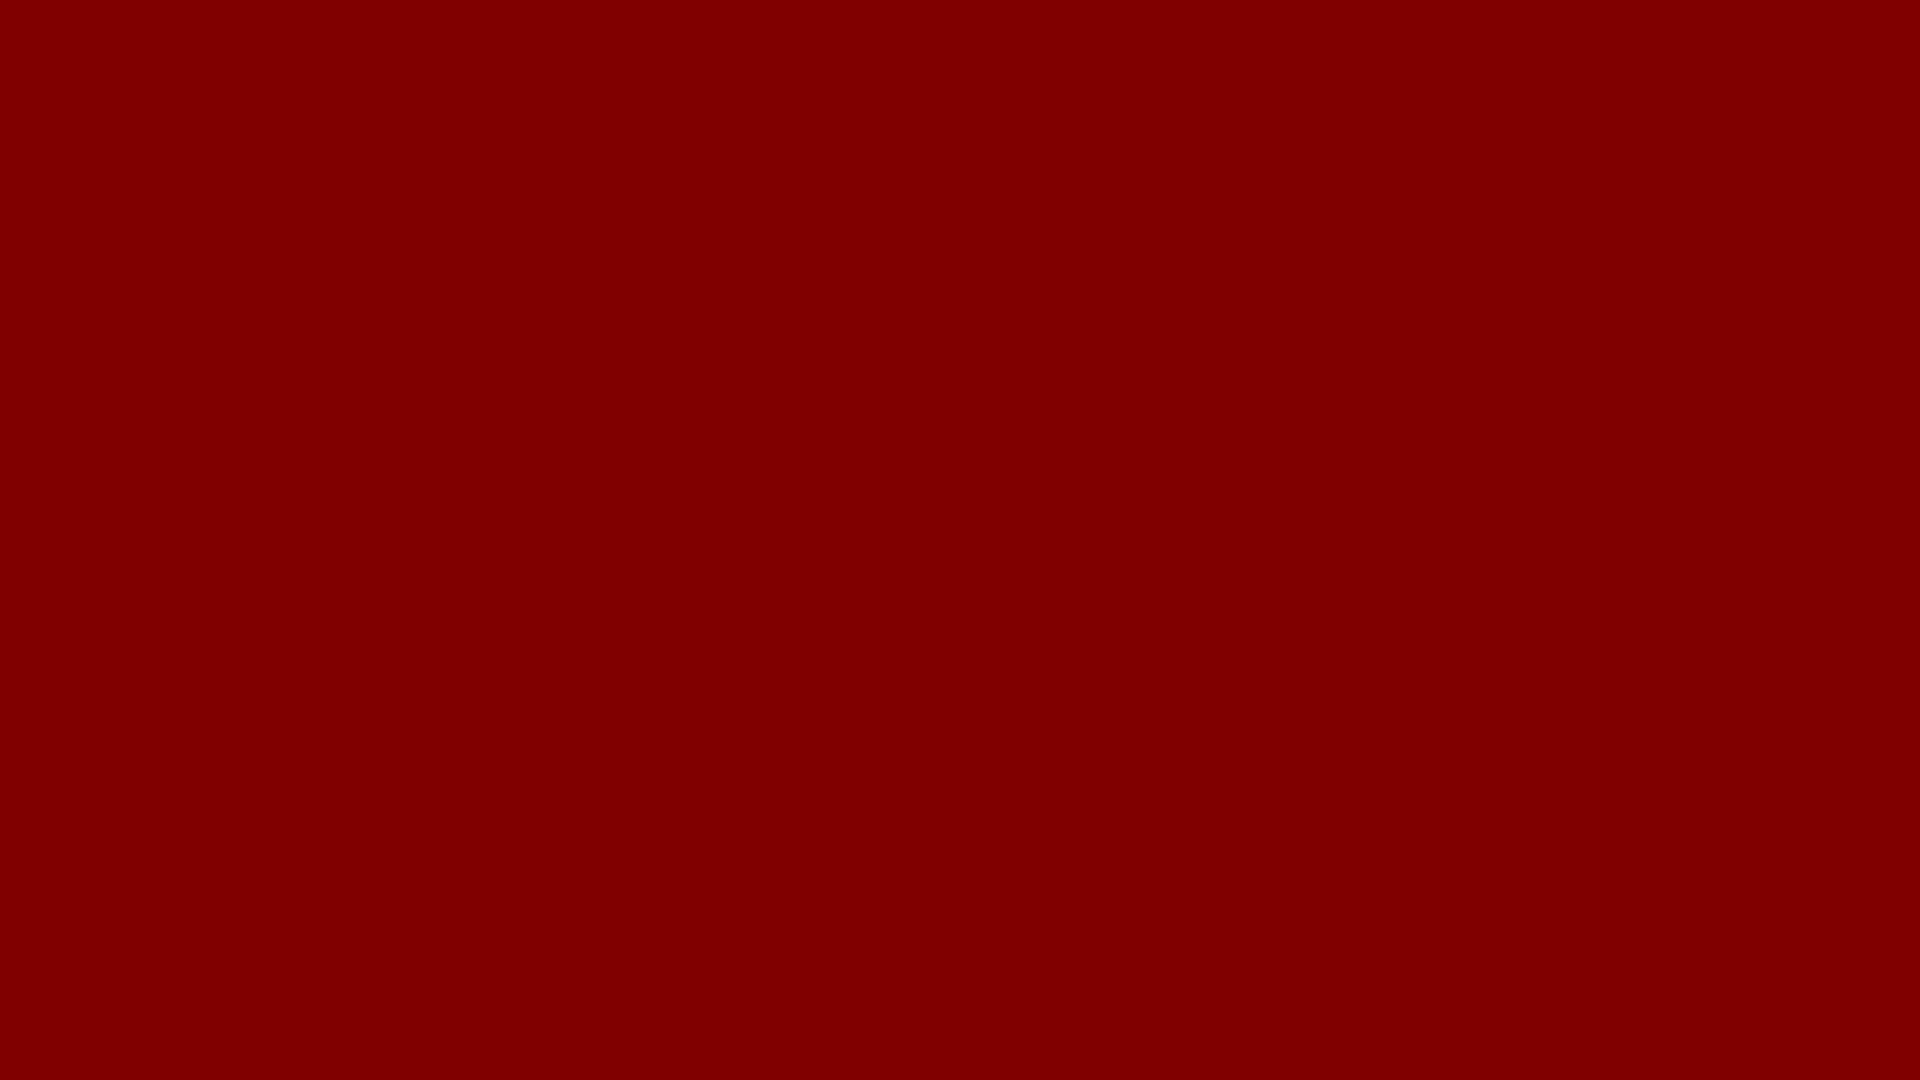 1920x1080 maroon web solid color background 1920x1080 maroon web solid color background